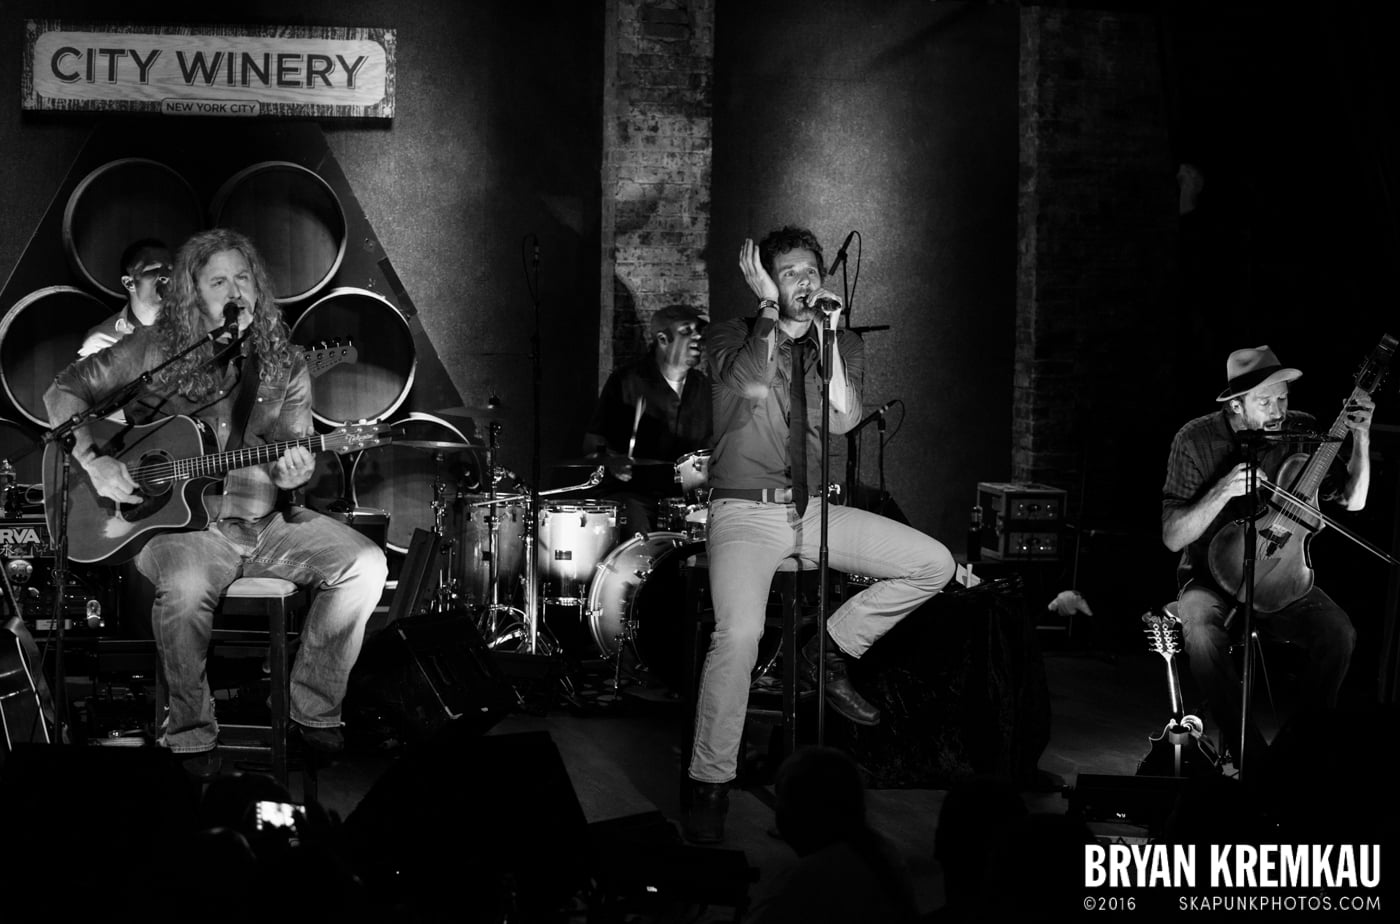 Carbon Leaf @ City Winery, NYC - July 11th 2013 - Bryan Kremkau (46)